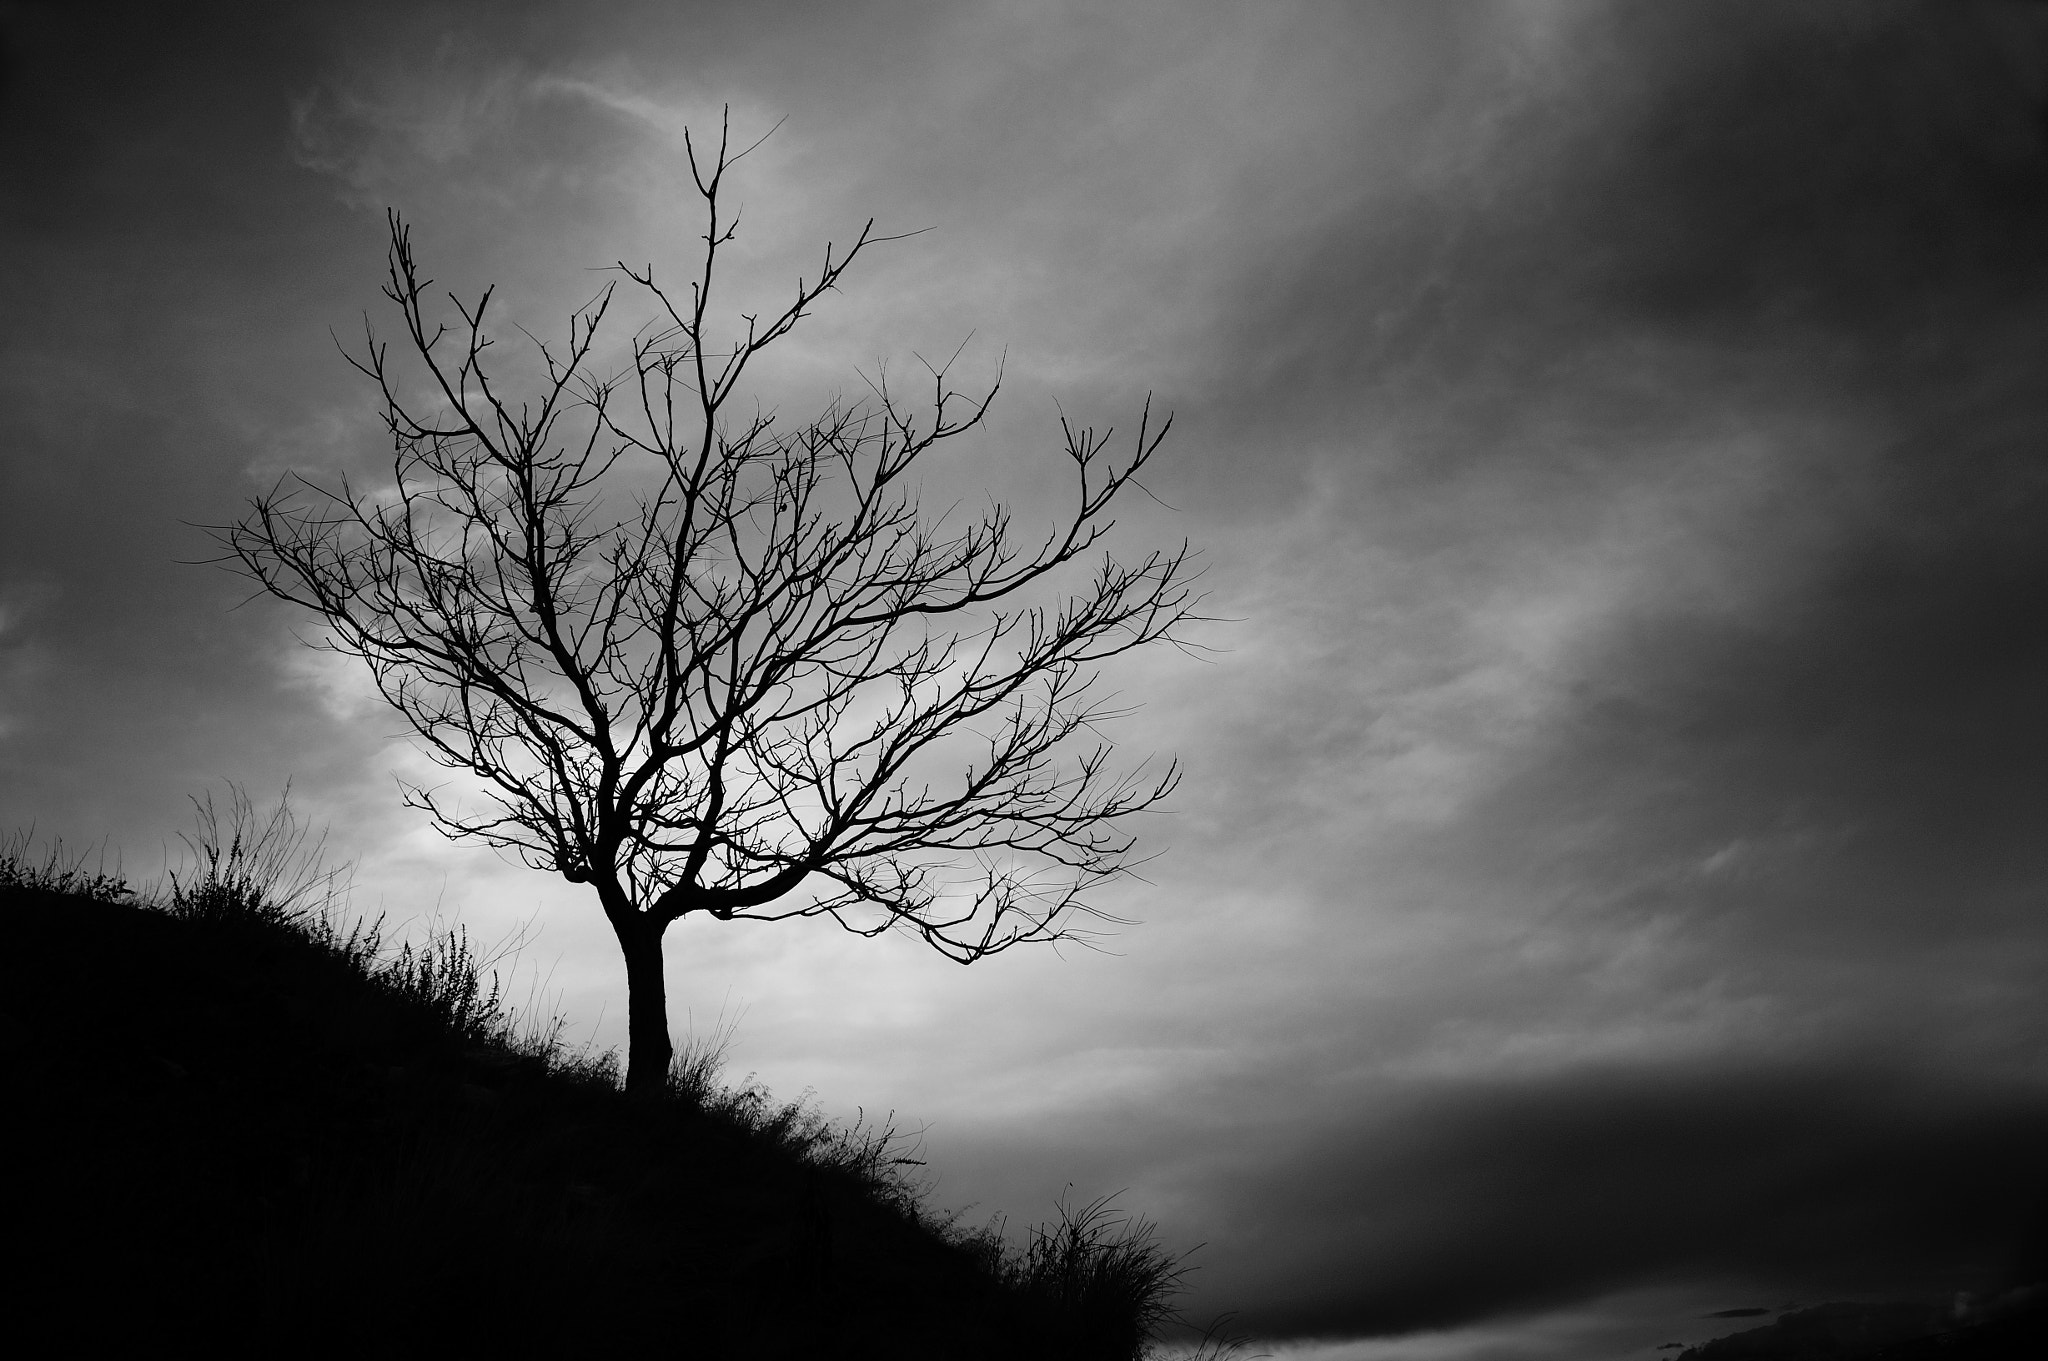 Photograph Stormy Tree by Chris Eaves on 500px